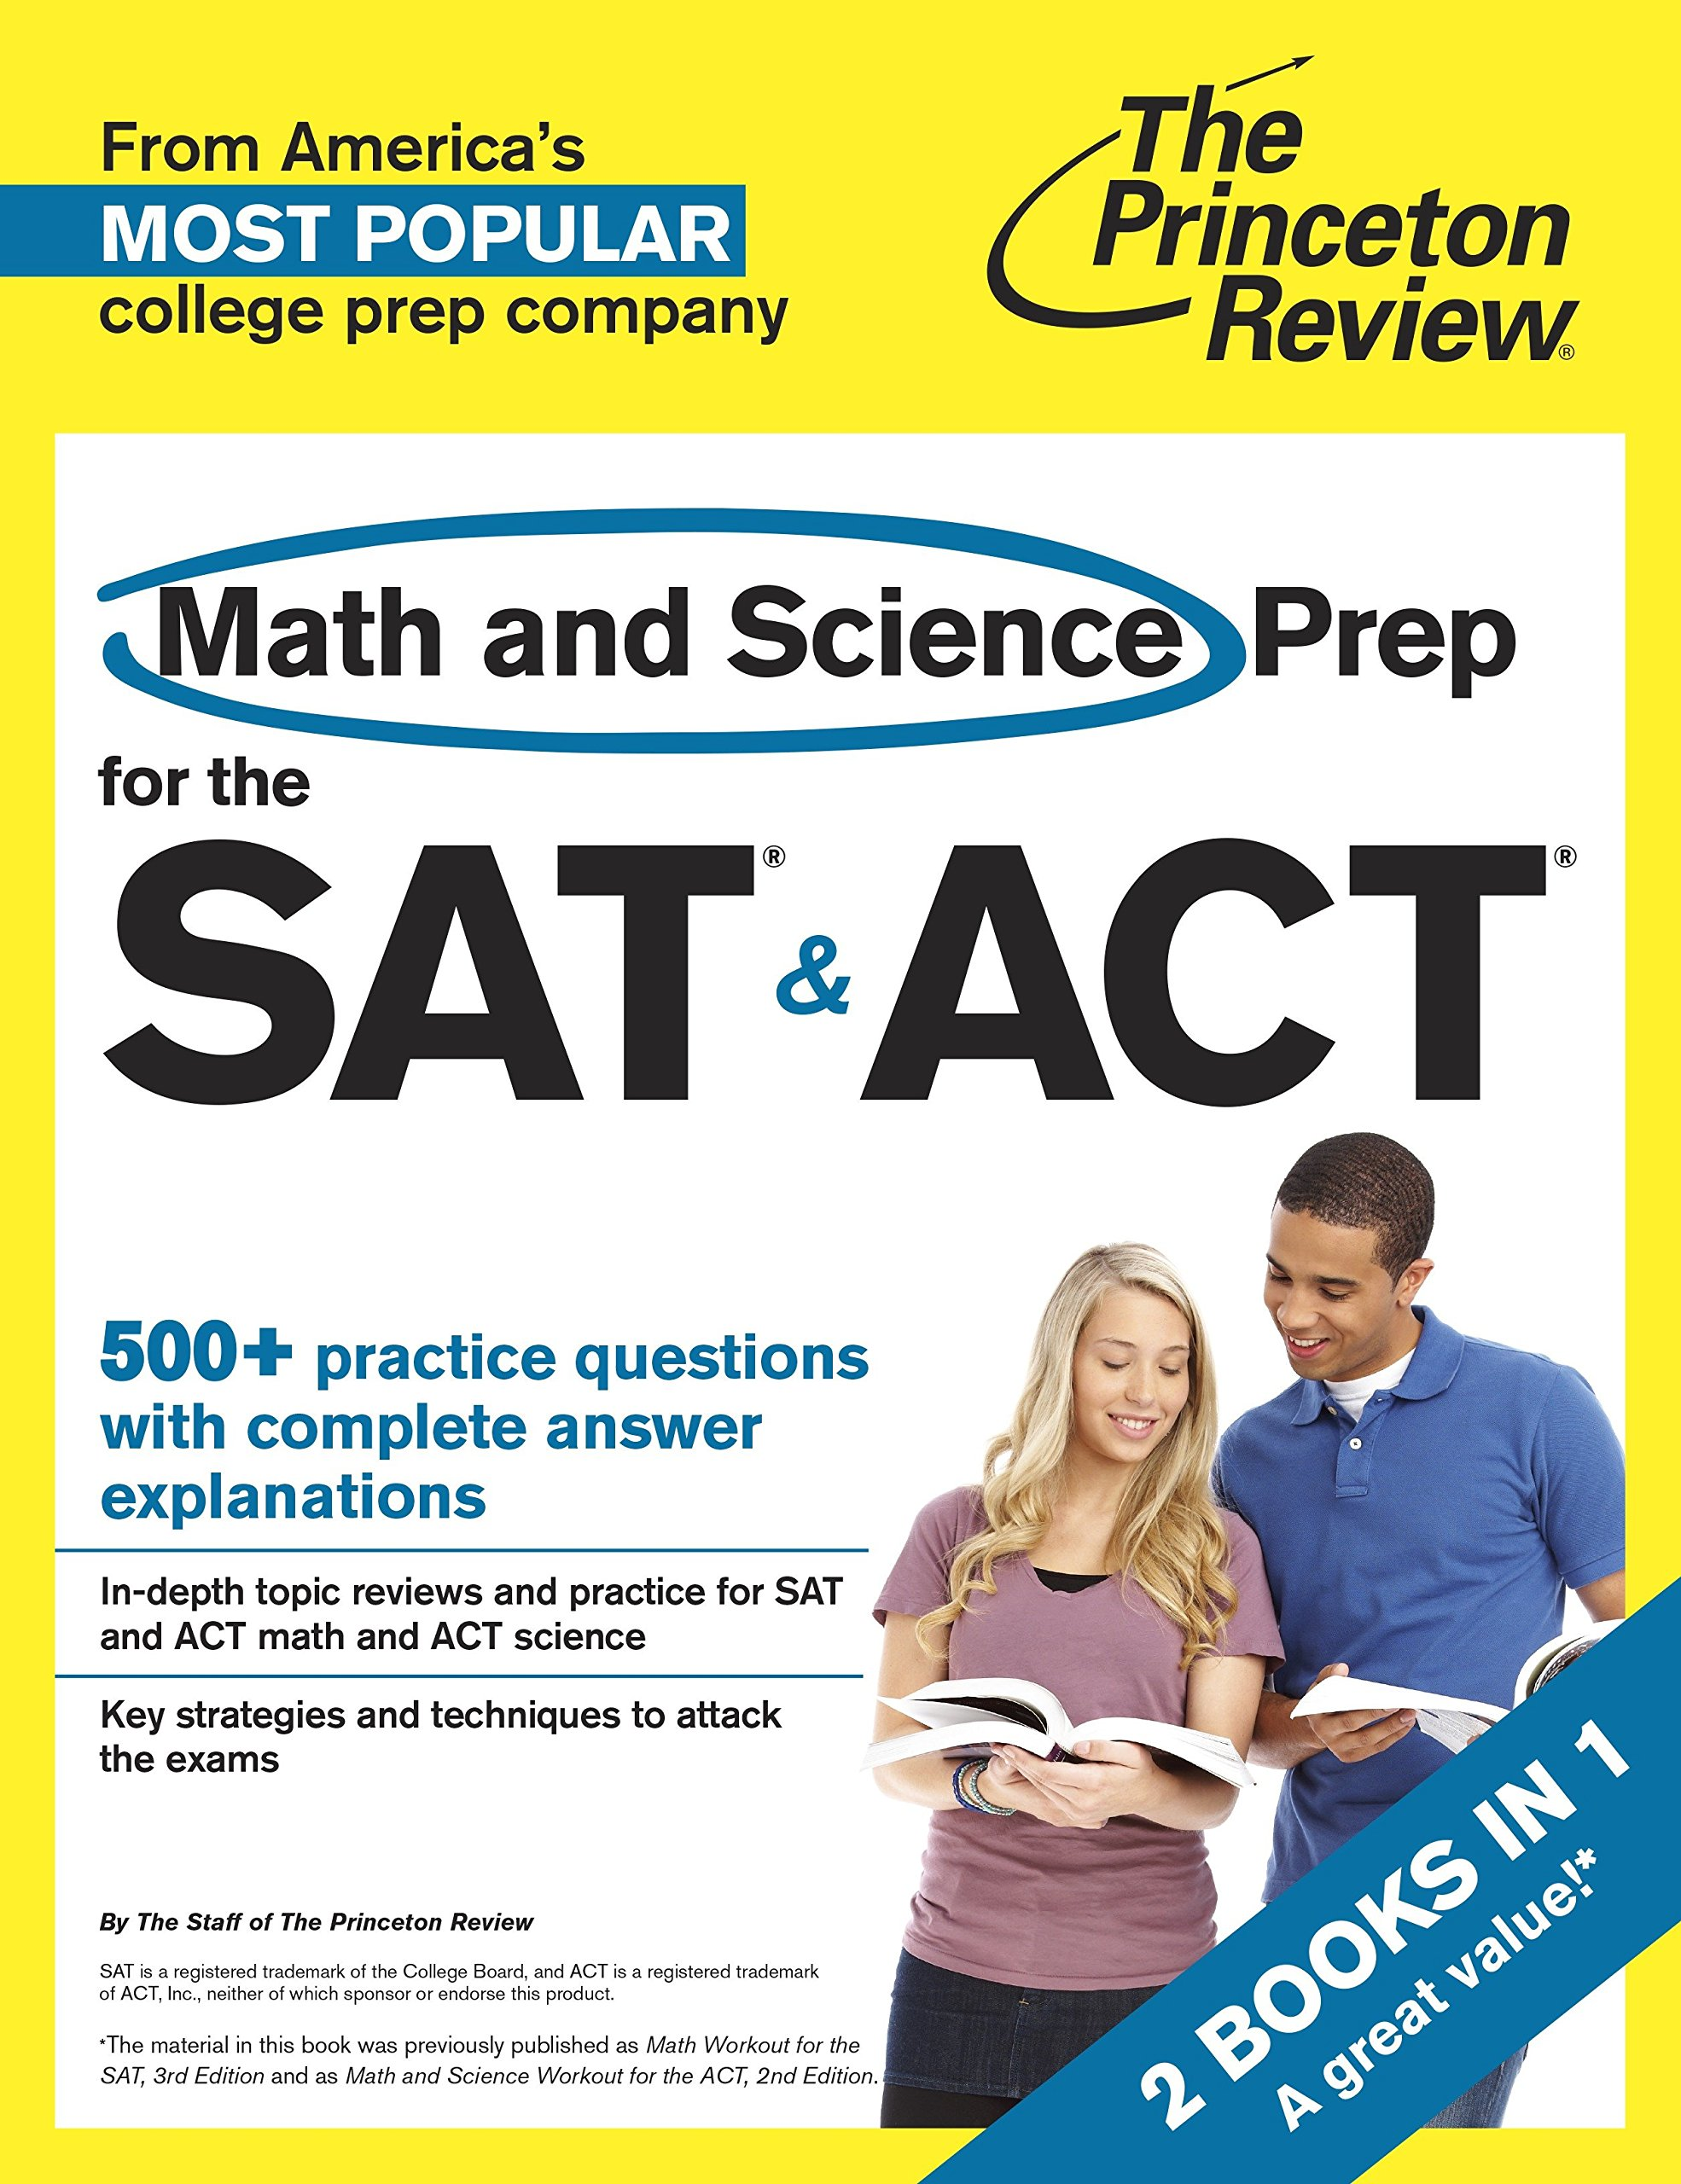 Image OfMath And Science Prep For The SAT & ACT: 2 Books In 1 (College Test Preparation)